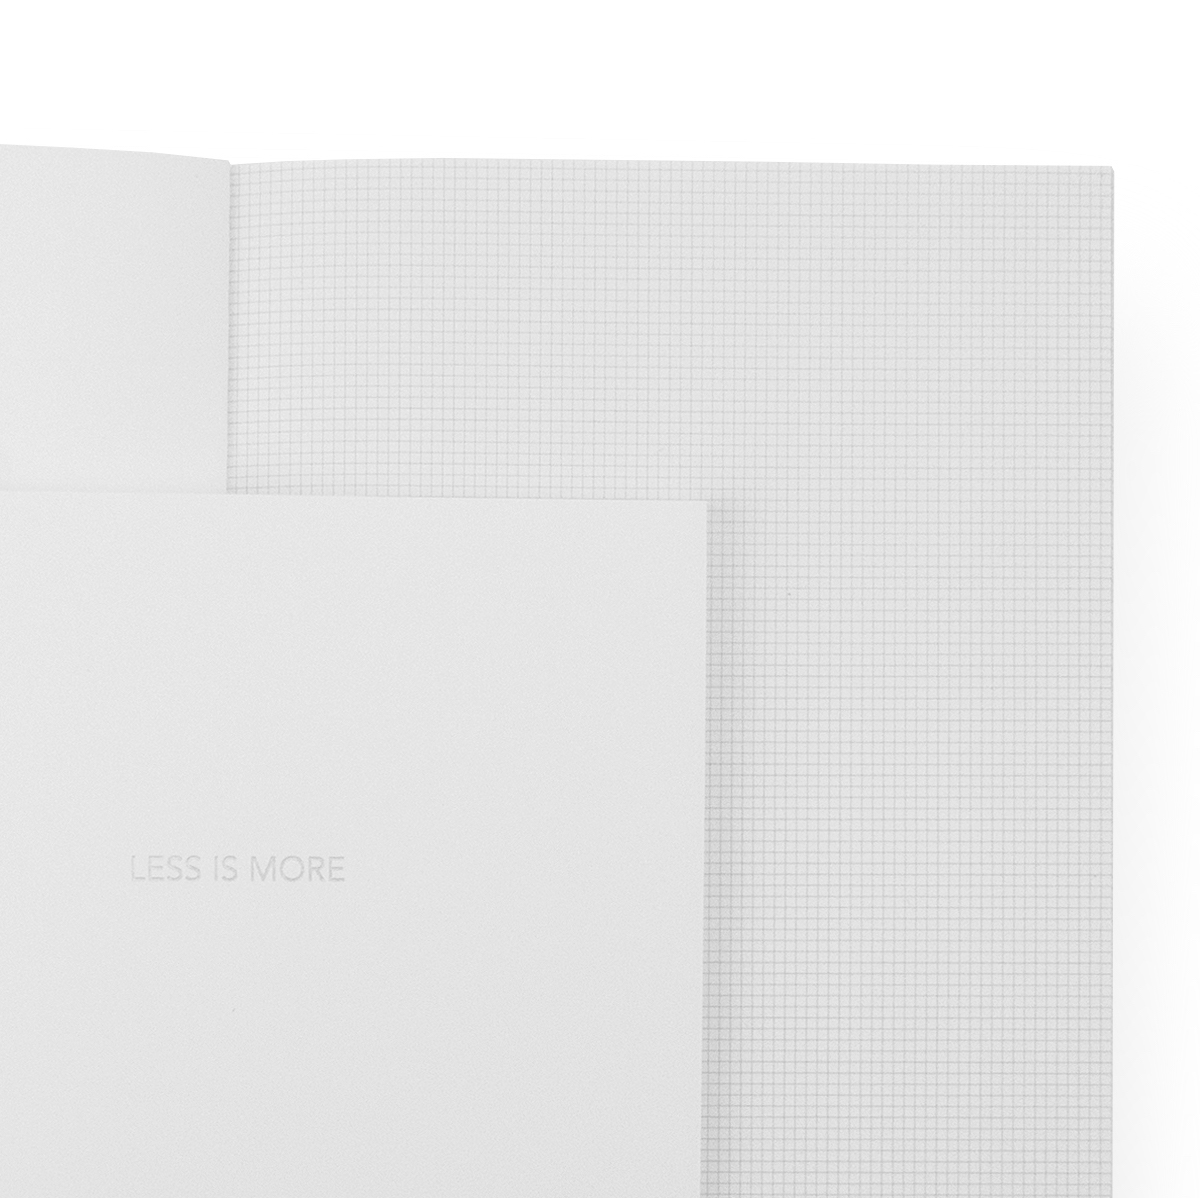 Notebook Weiß Notebook With Graph Paper Archiquote Cahier Weiss